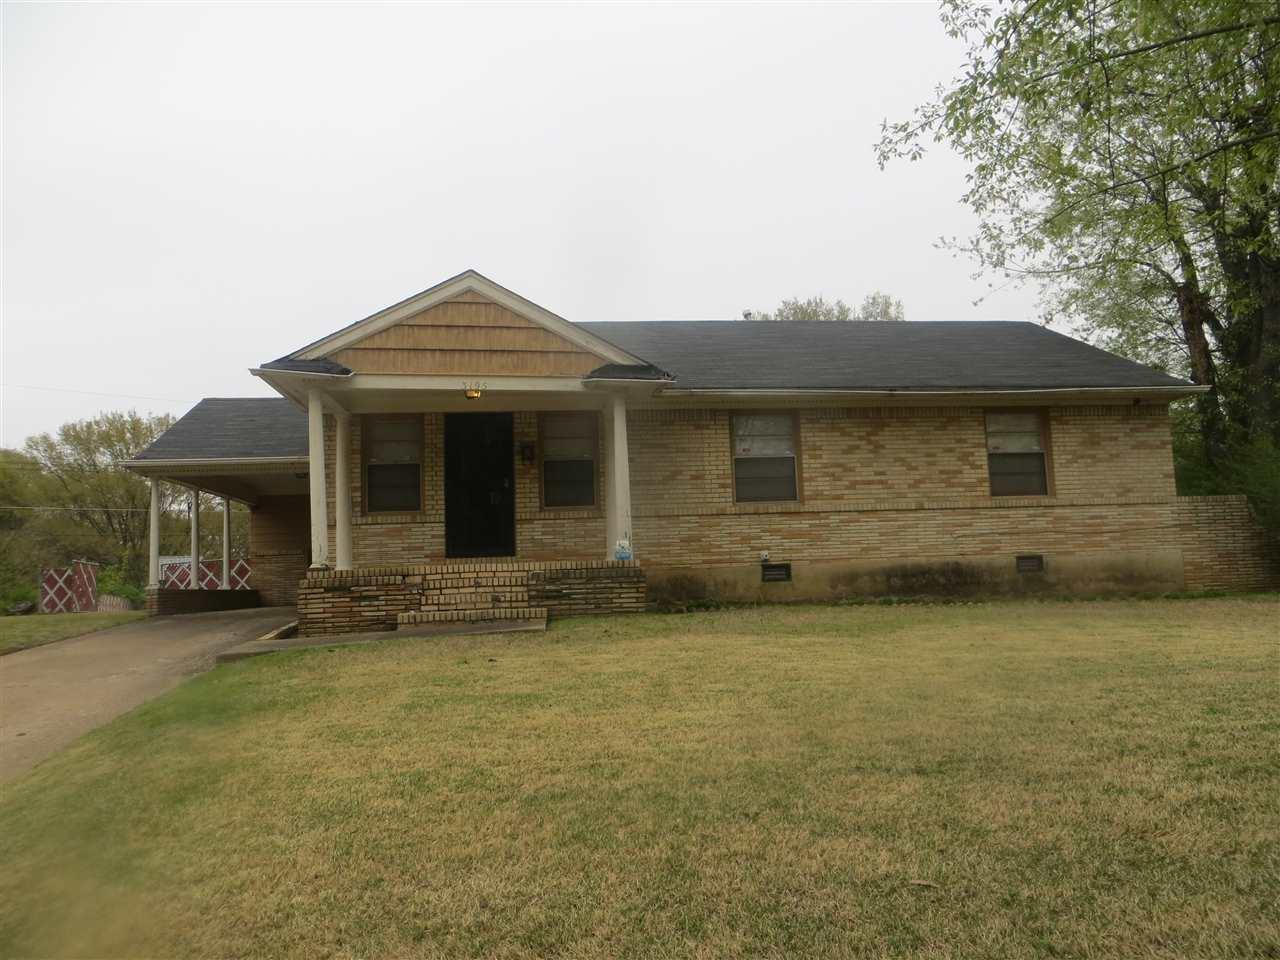 Local Real Estate: Homes for Sale — Cherokee Civic Club, TN ...